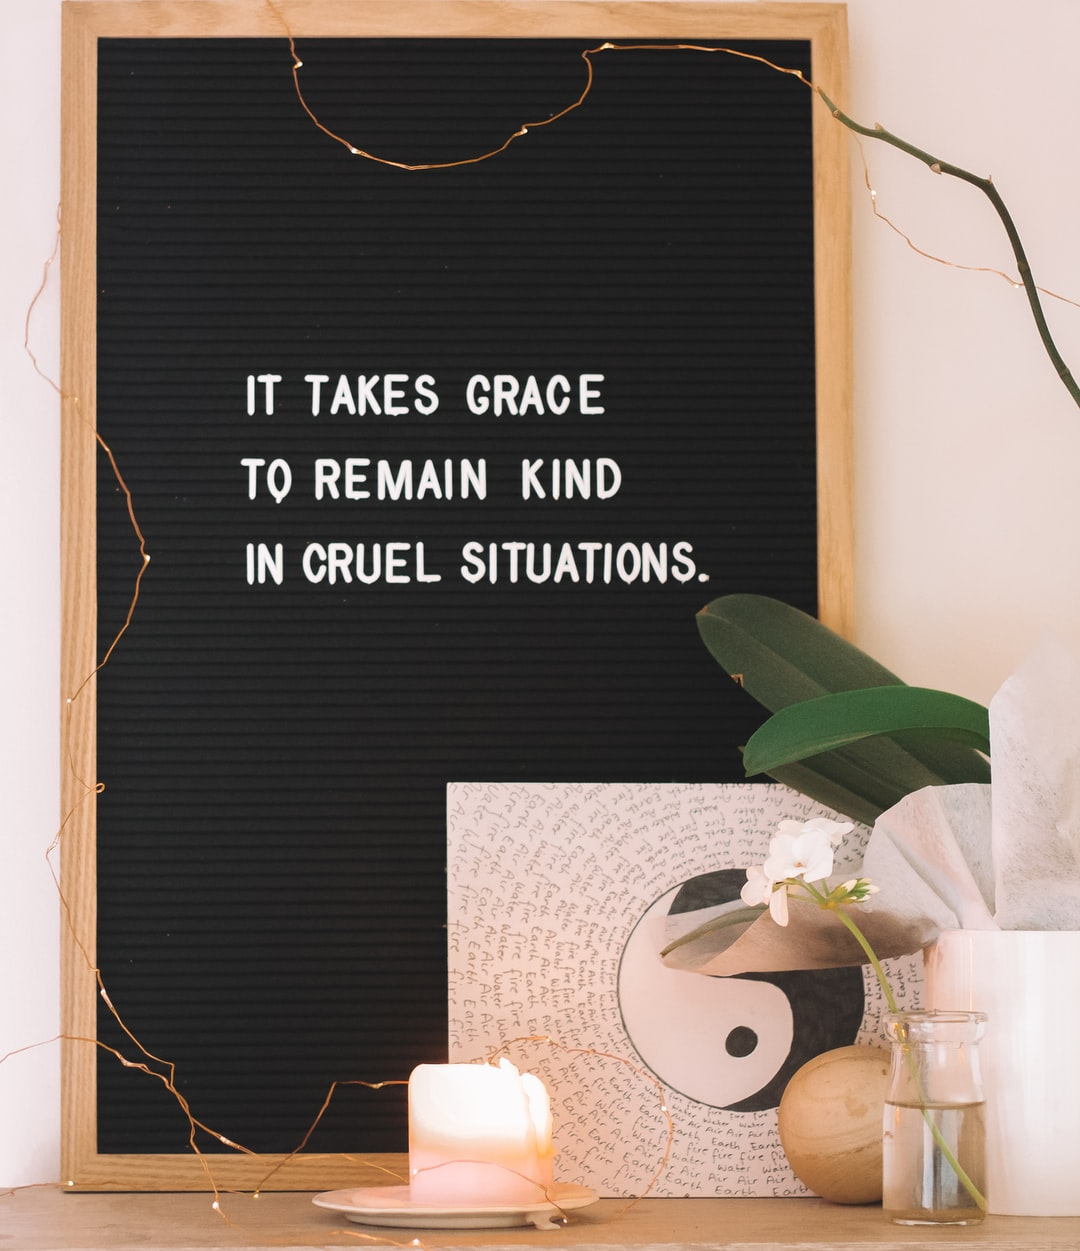 After breaking up with my then boyfriend, I found comfort in words. This one really struck a chord with me. It's easy to blame, to get angry, to take things out on others. But to remain kind, soft and understanding through such a difficult situation - That takes grace.